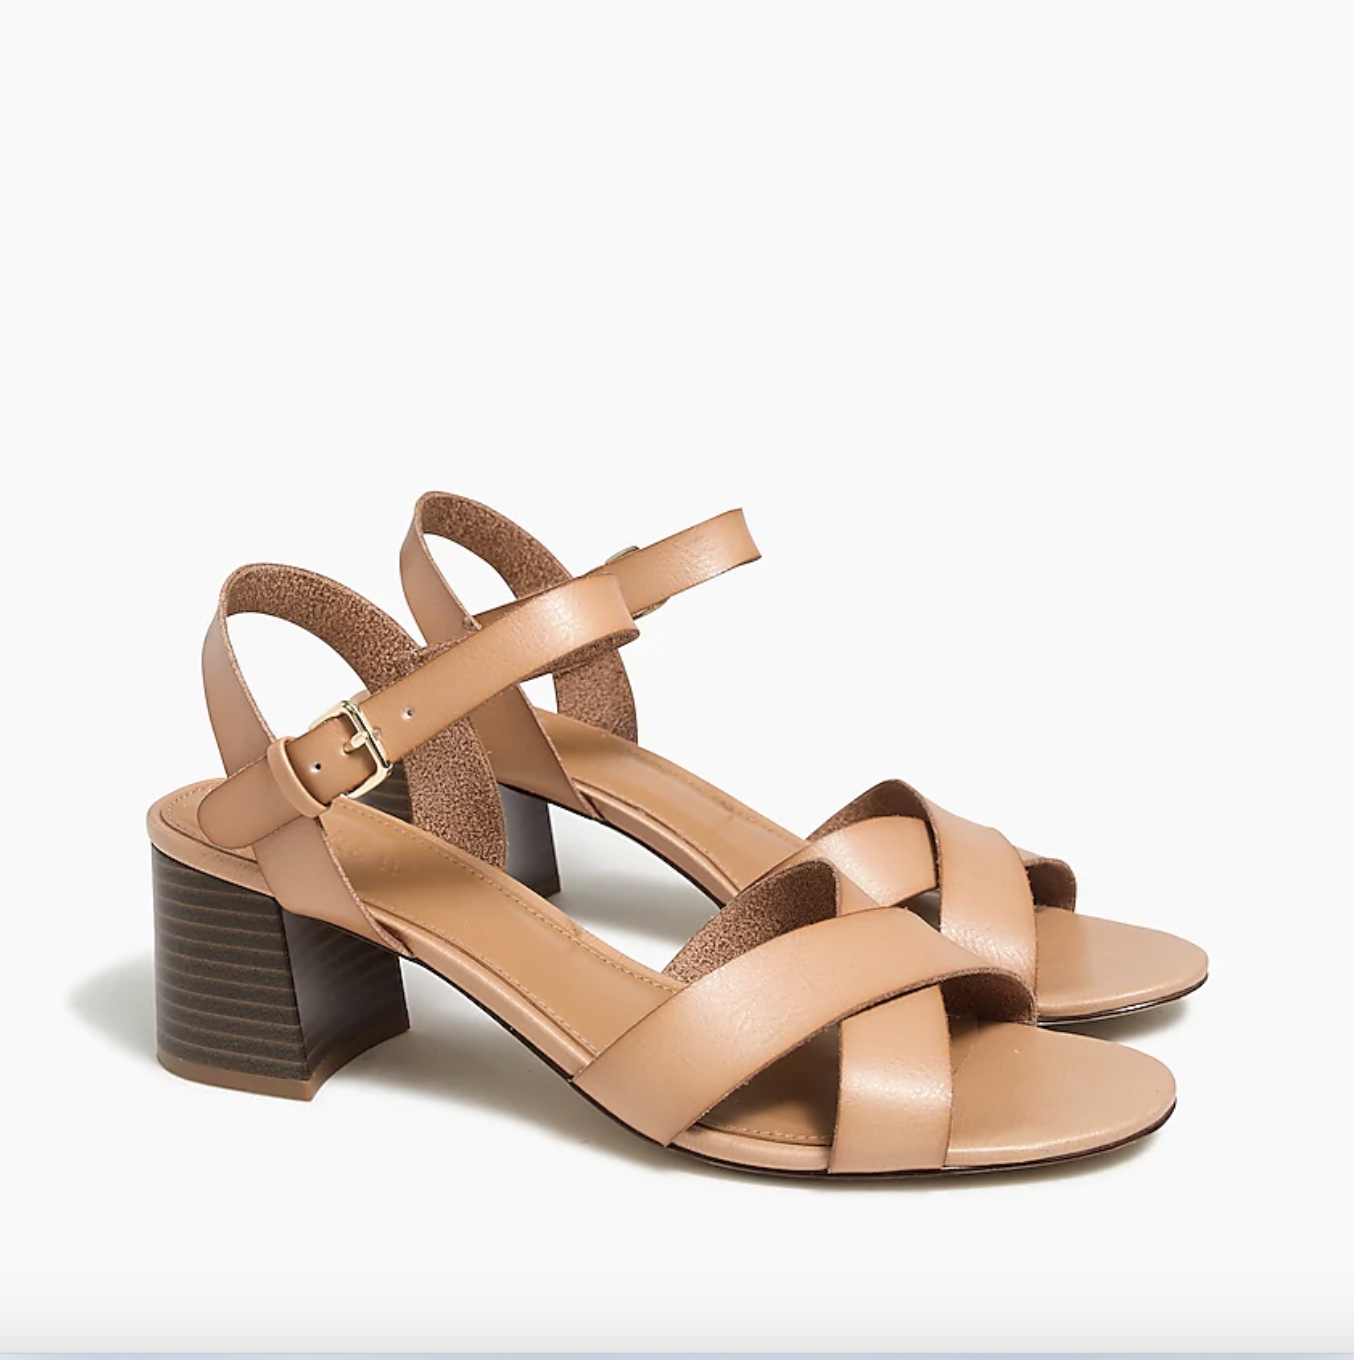 A pair of cross-strap low-block caramel brown heels against a plain background